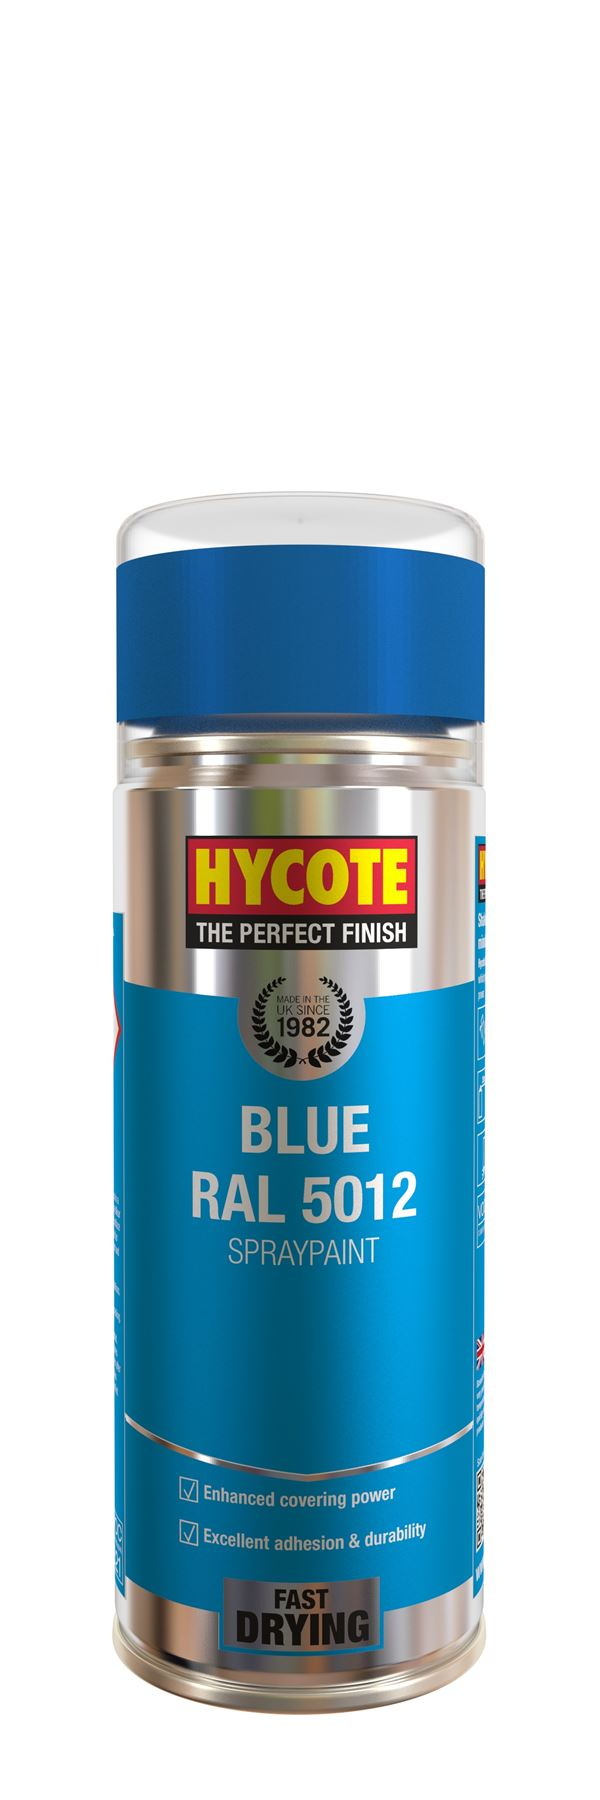 Hycote Blue Ral 5012 Paint - 400ml